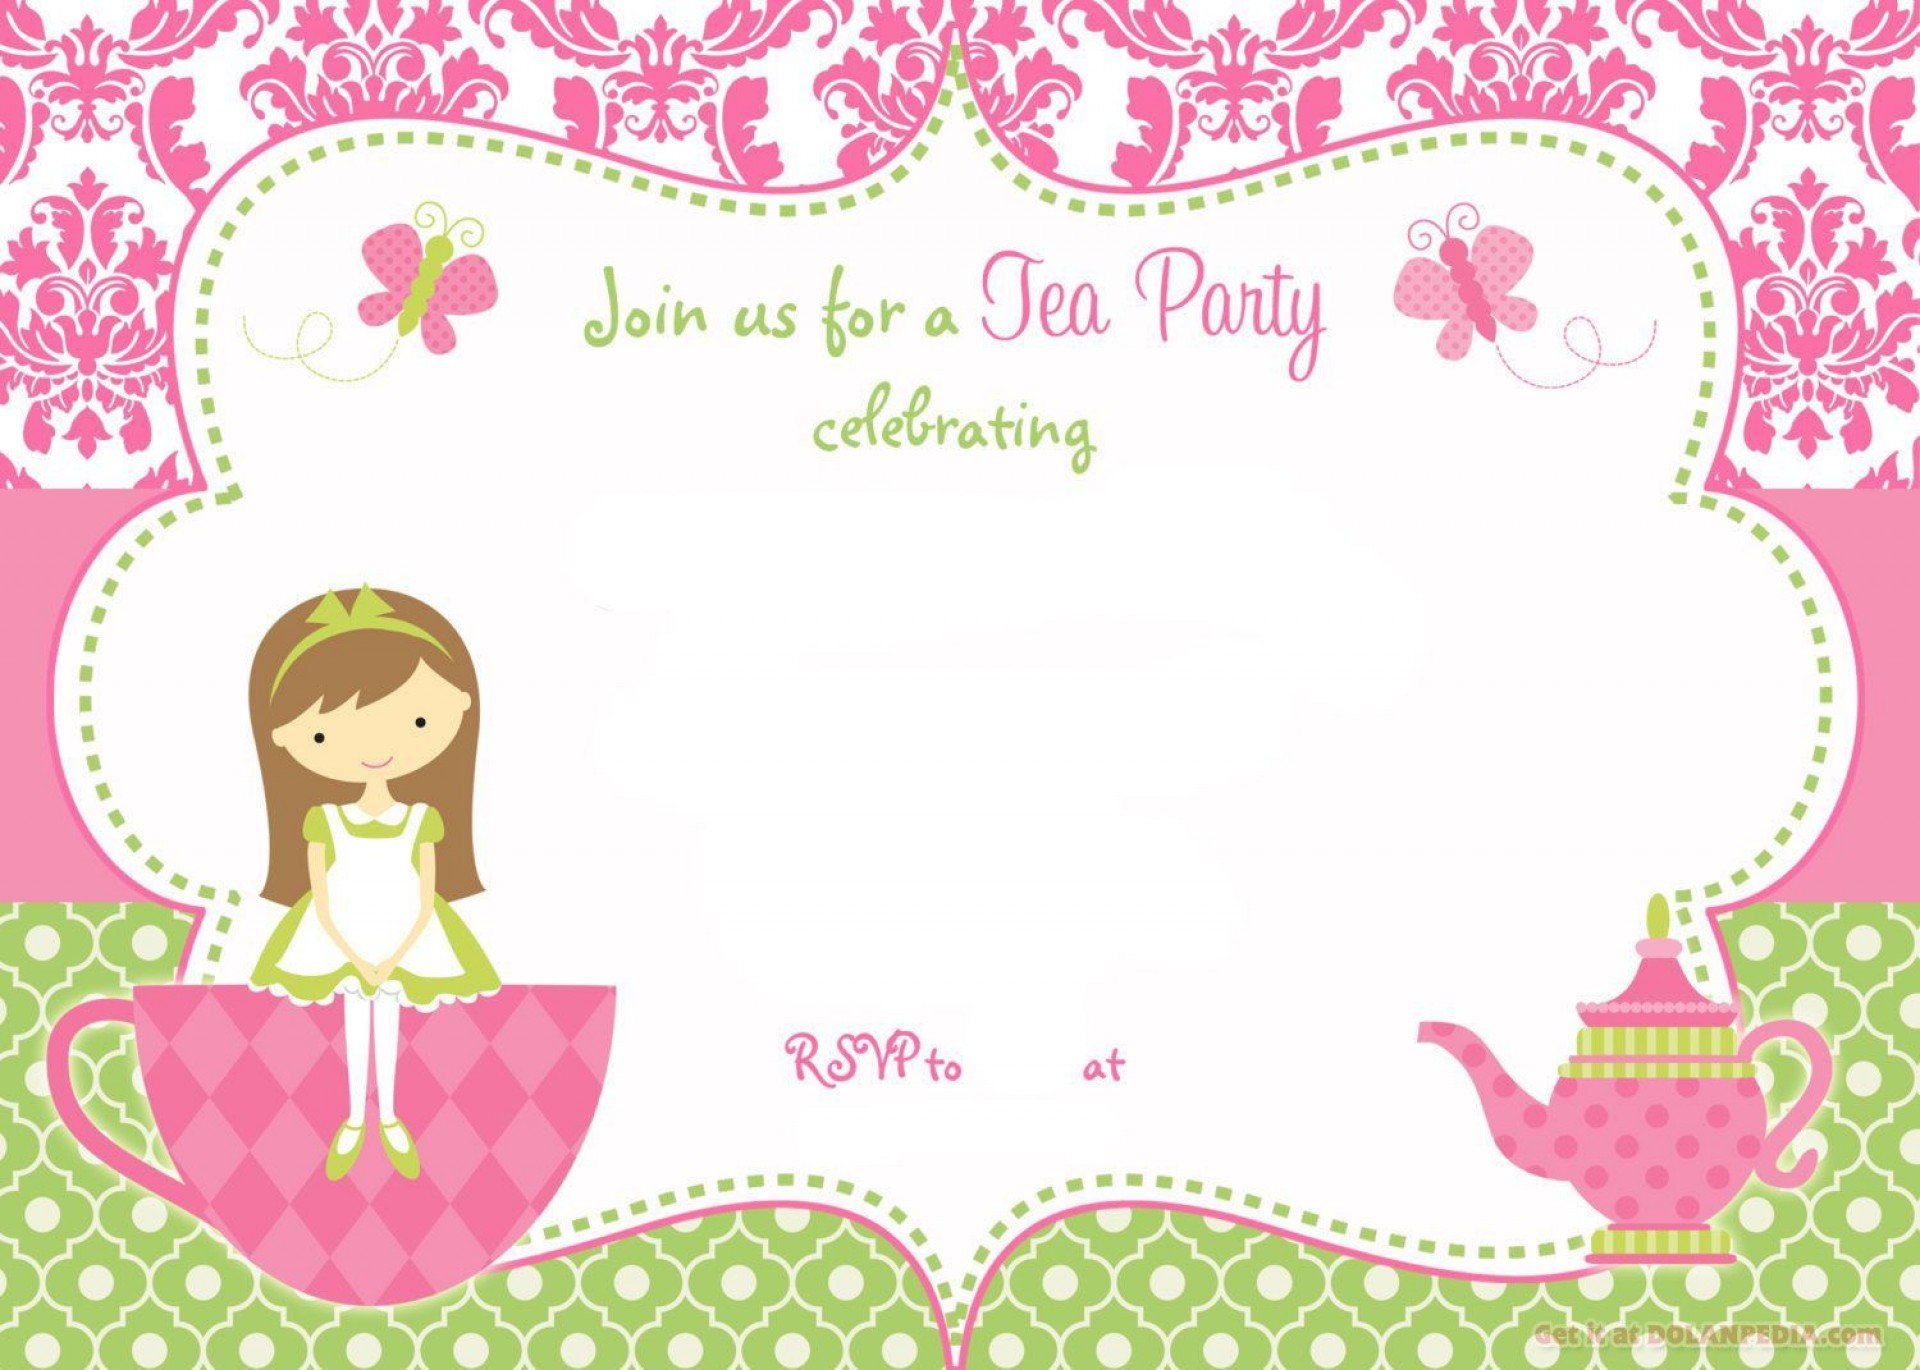 002 Shocking Tea Party Invitation Template High Def  Wording Vintage Free Sample1920